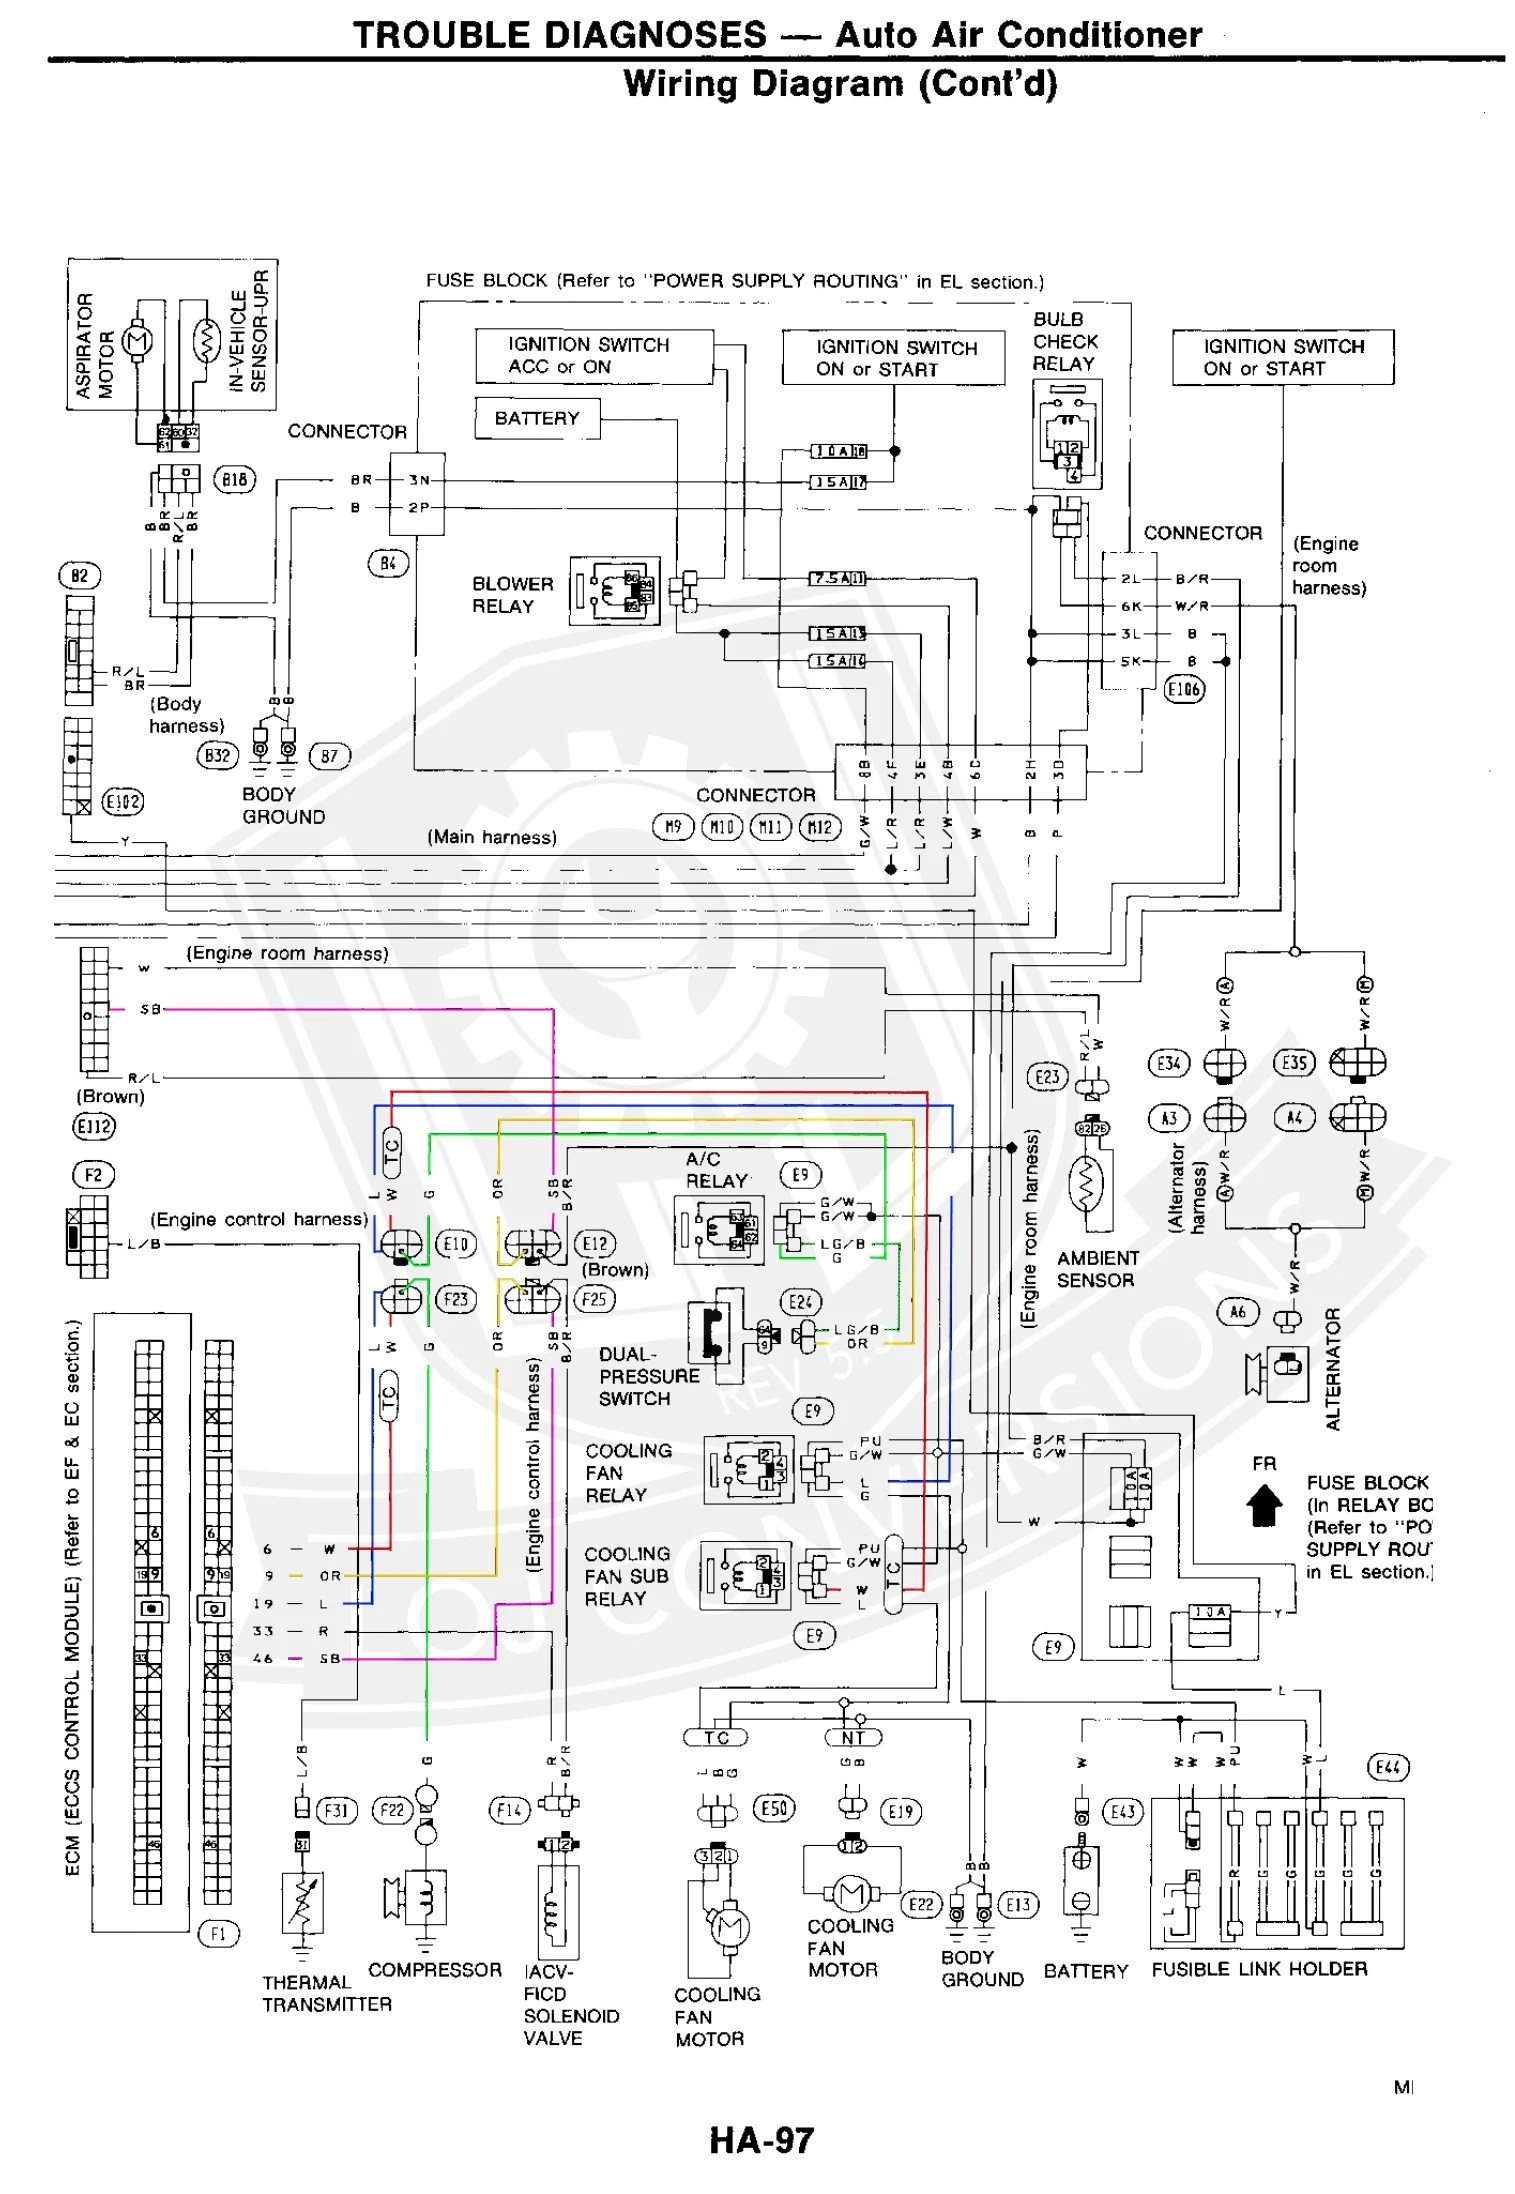 medium resolution of 300zx wire diagram wiring diagram centre 87 300zx wiring diagram